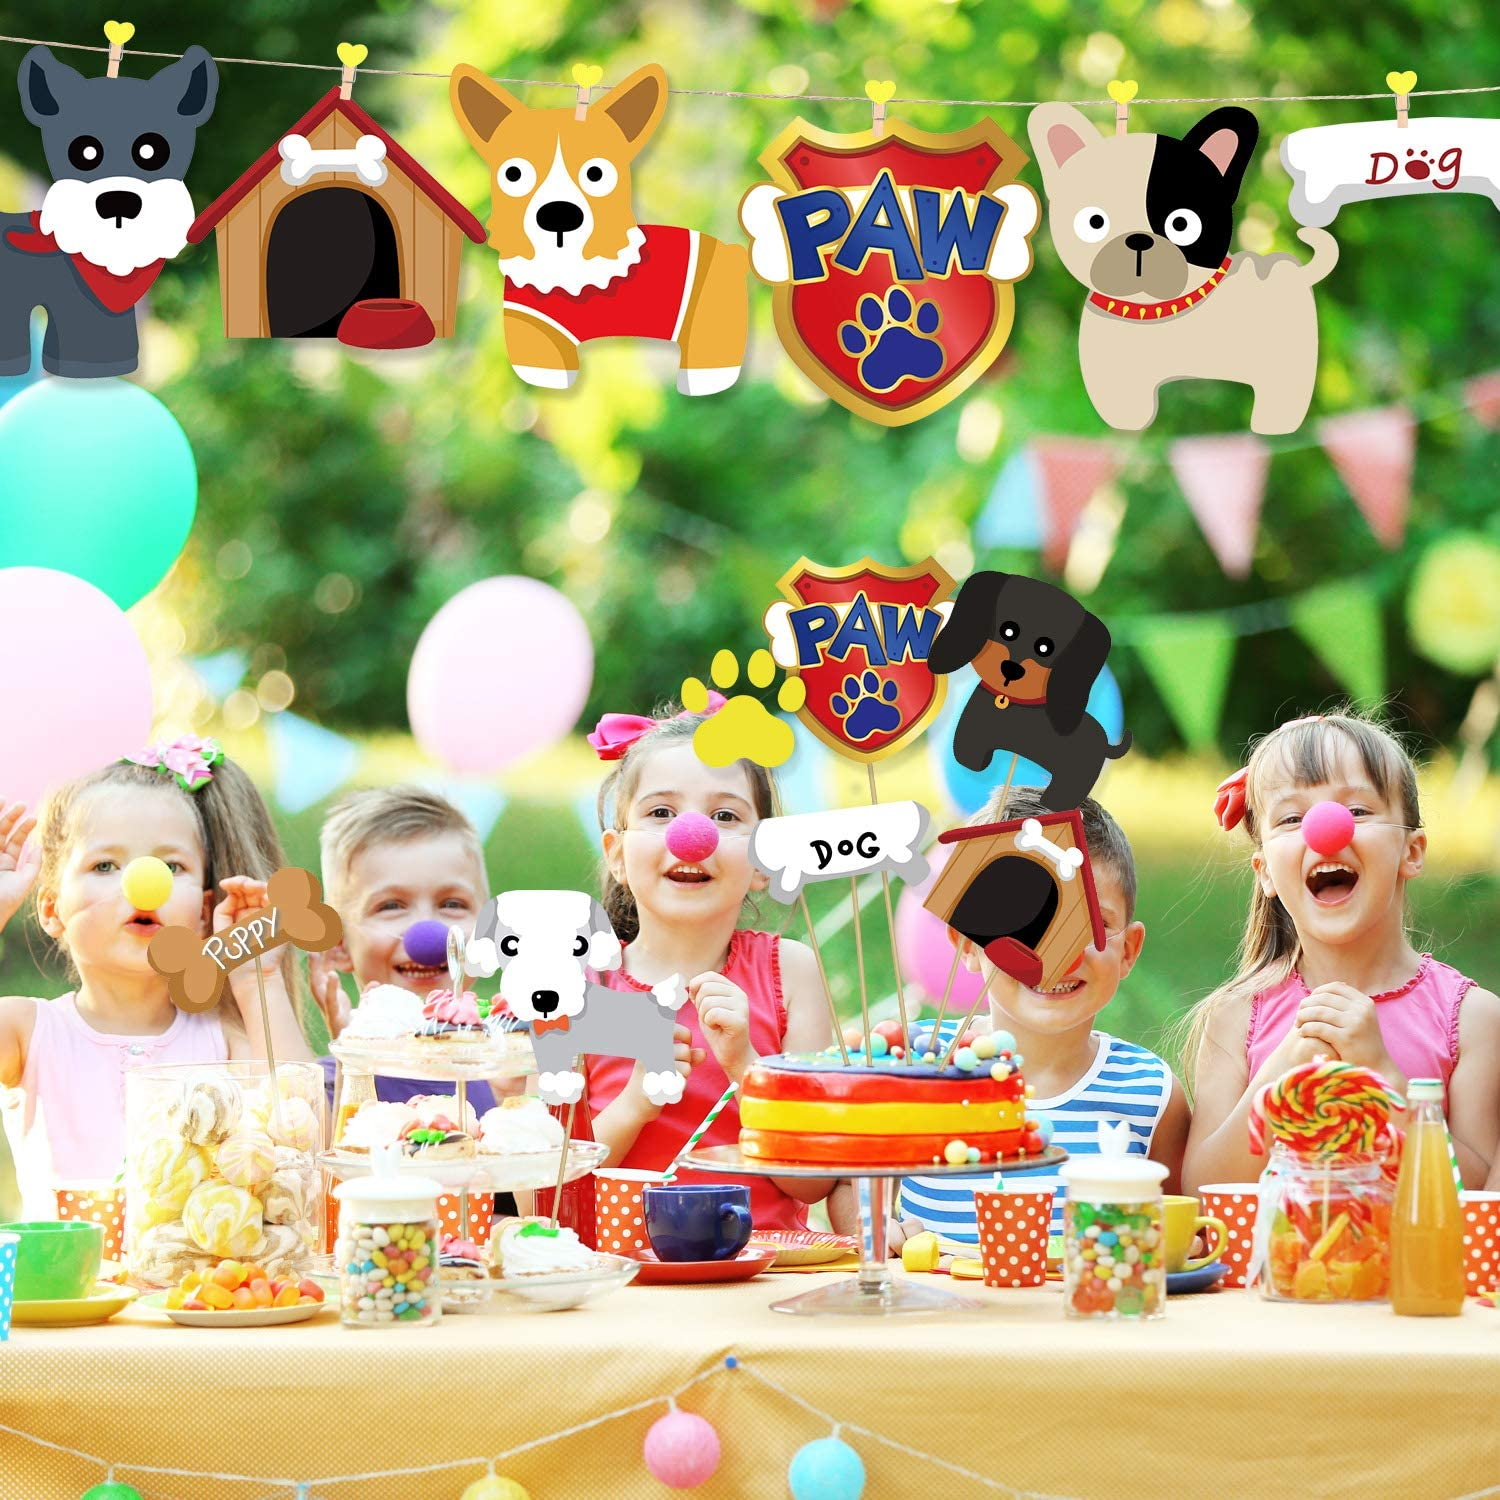 25 Pieces Puppy Dog Party/Decoration Set Pet Birthday Party Centerpiece/Sticks Table Toppers for Puppy Dog Themed Party Baby Shower Birthday Party Supplies Double Side Printed